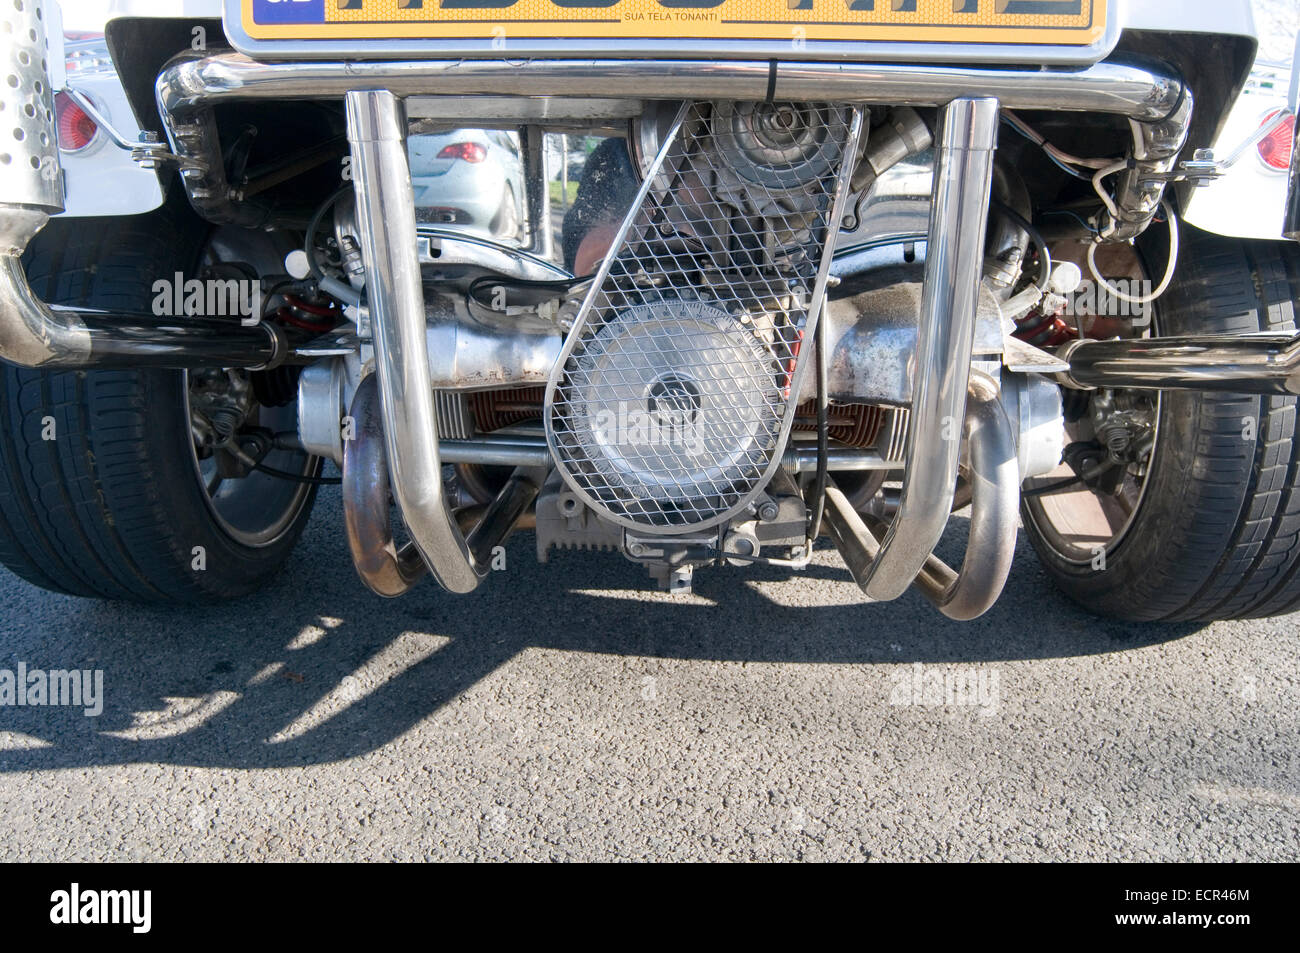 Trikes High Resolution Stock Photography And Images Alamy